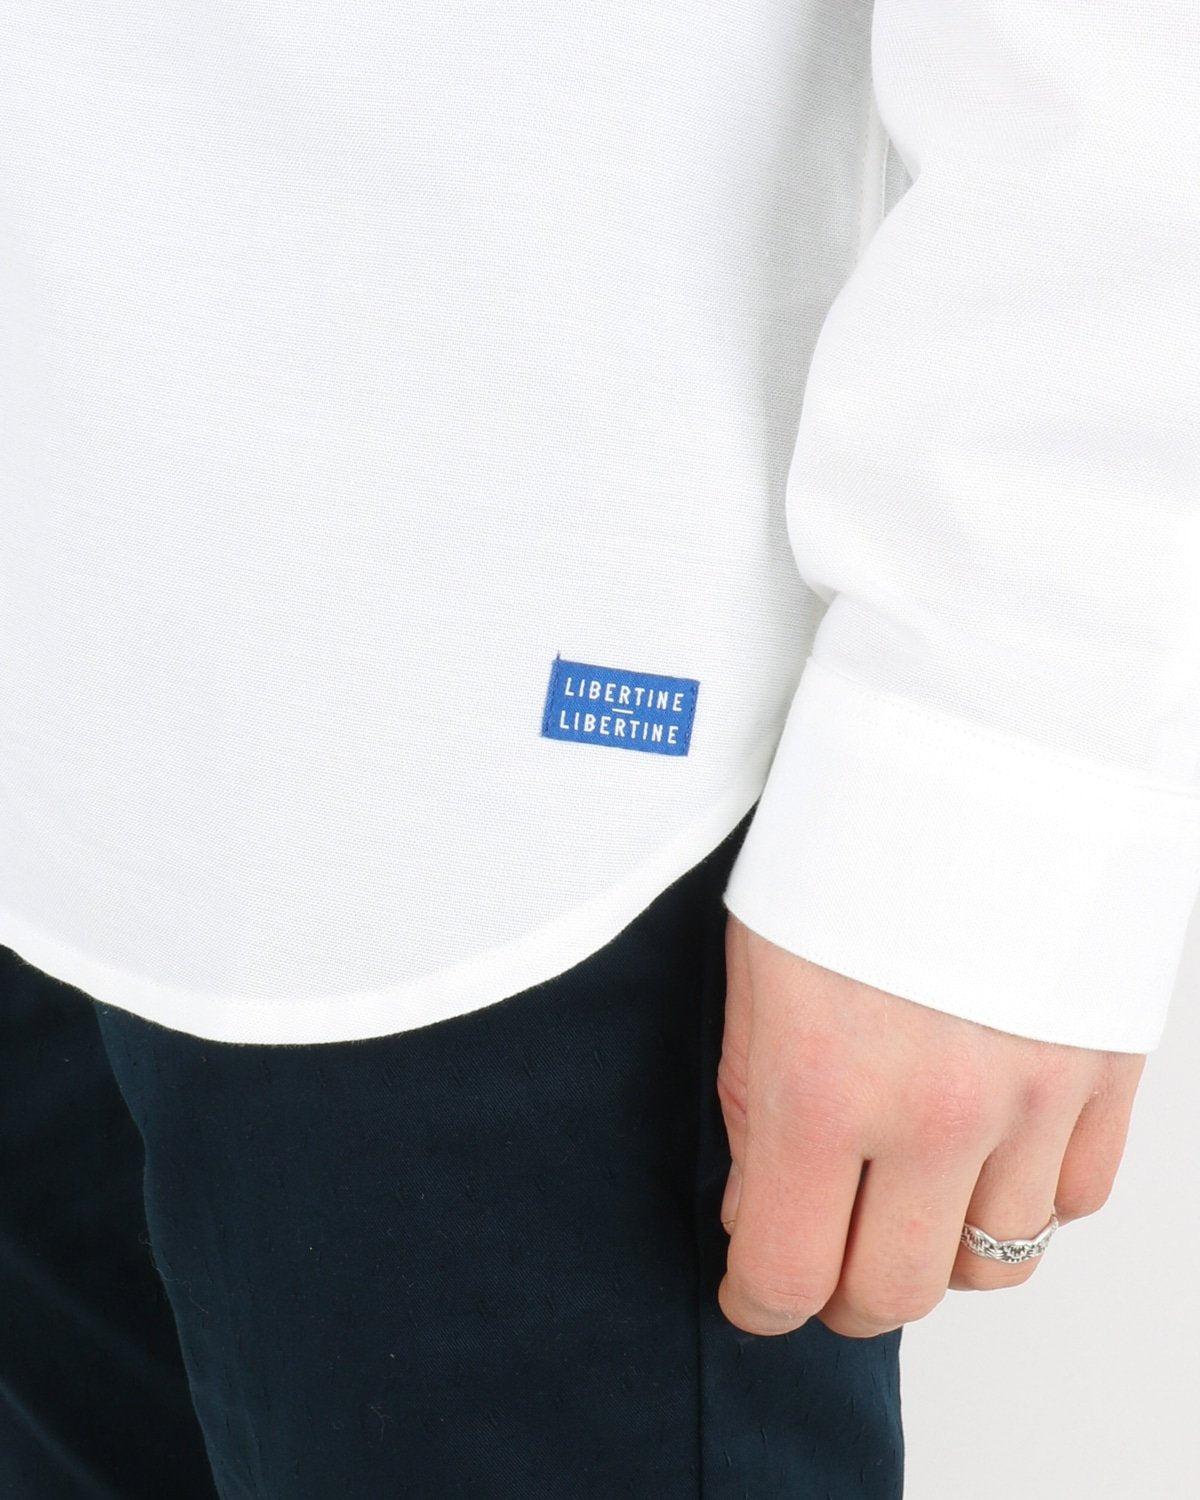 libertine libertine_factory shirt_white_4_4